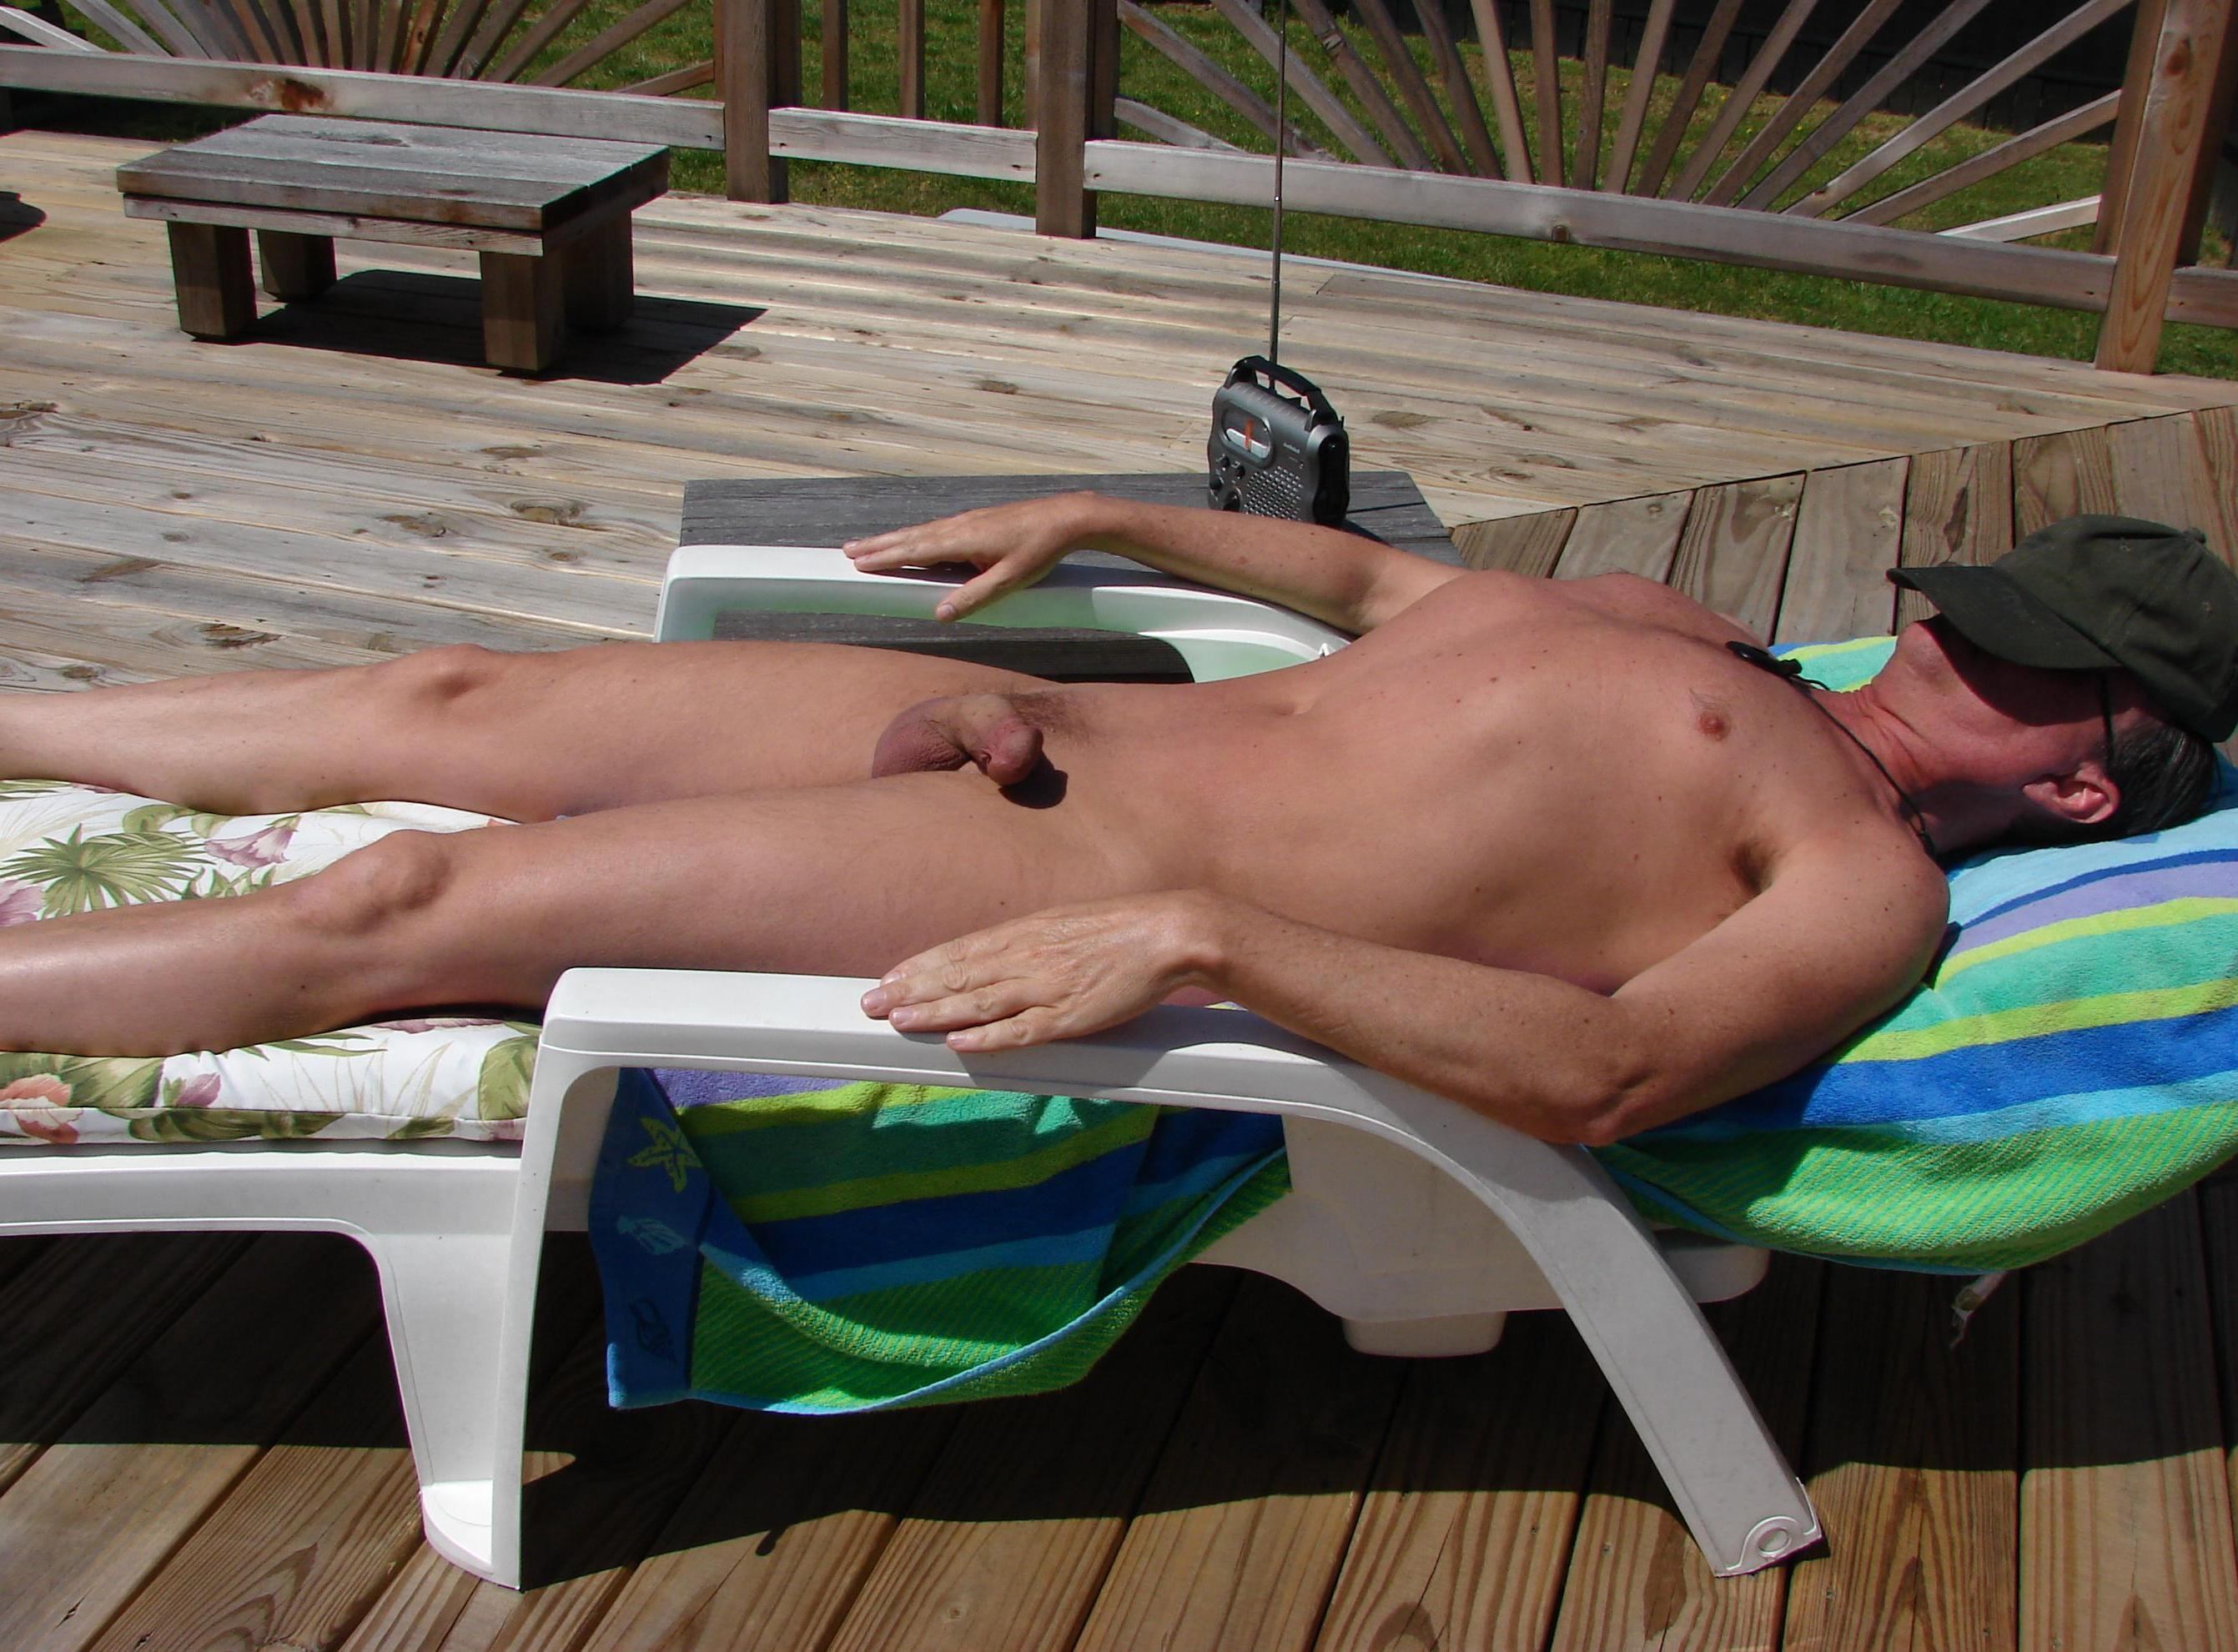 Description Nude Sunbathing Sundeck